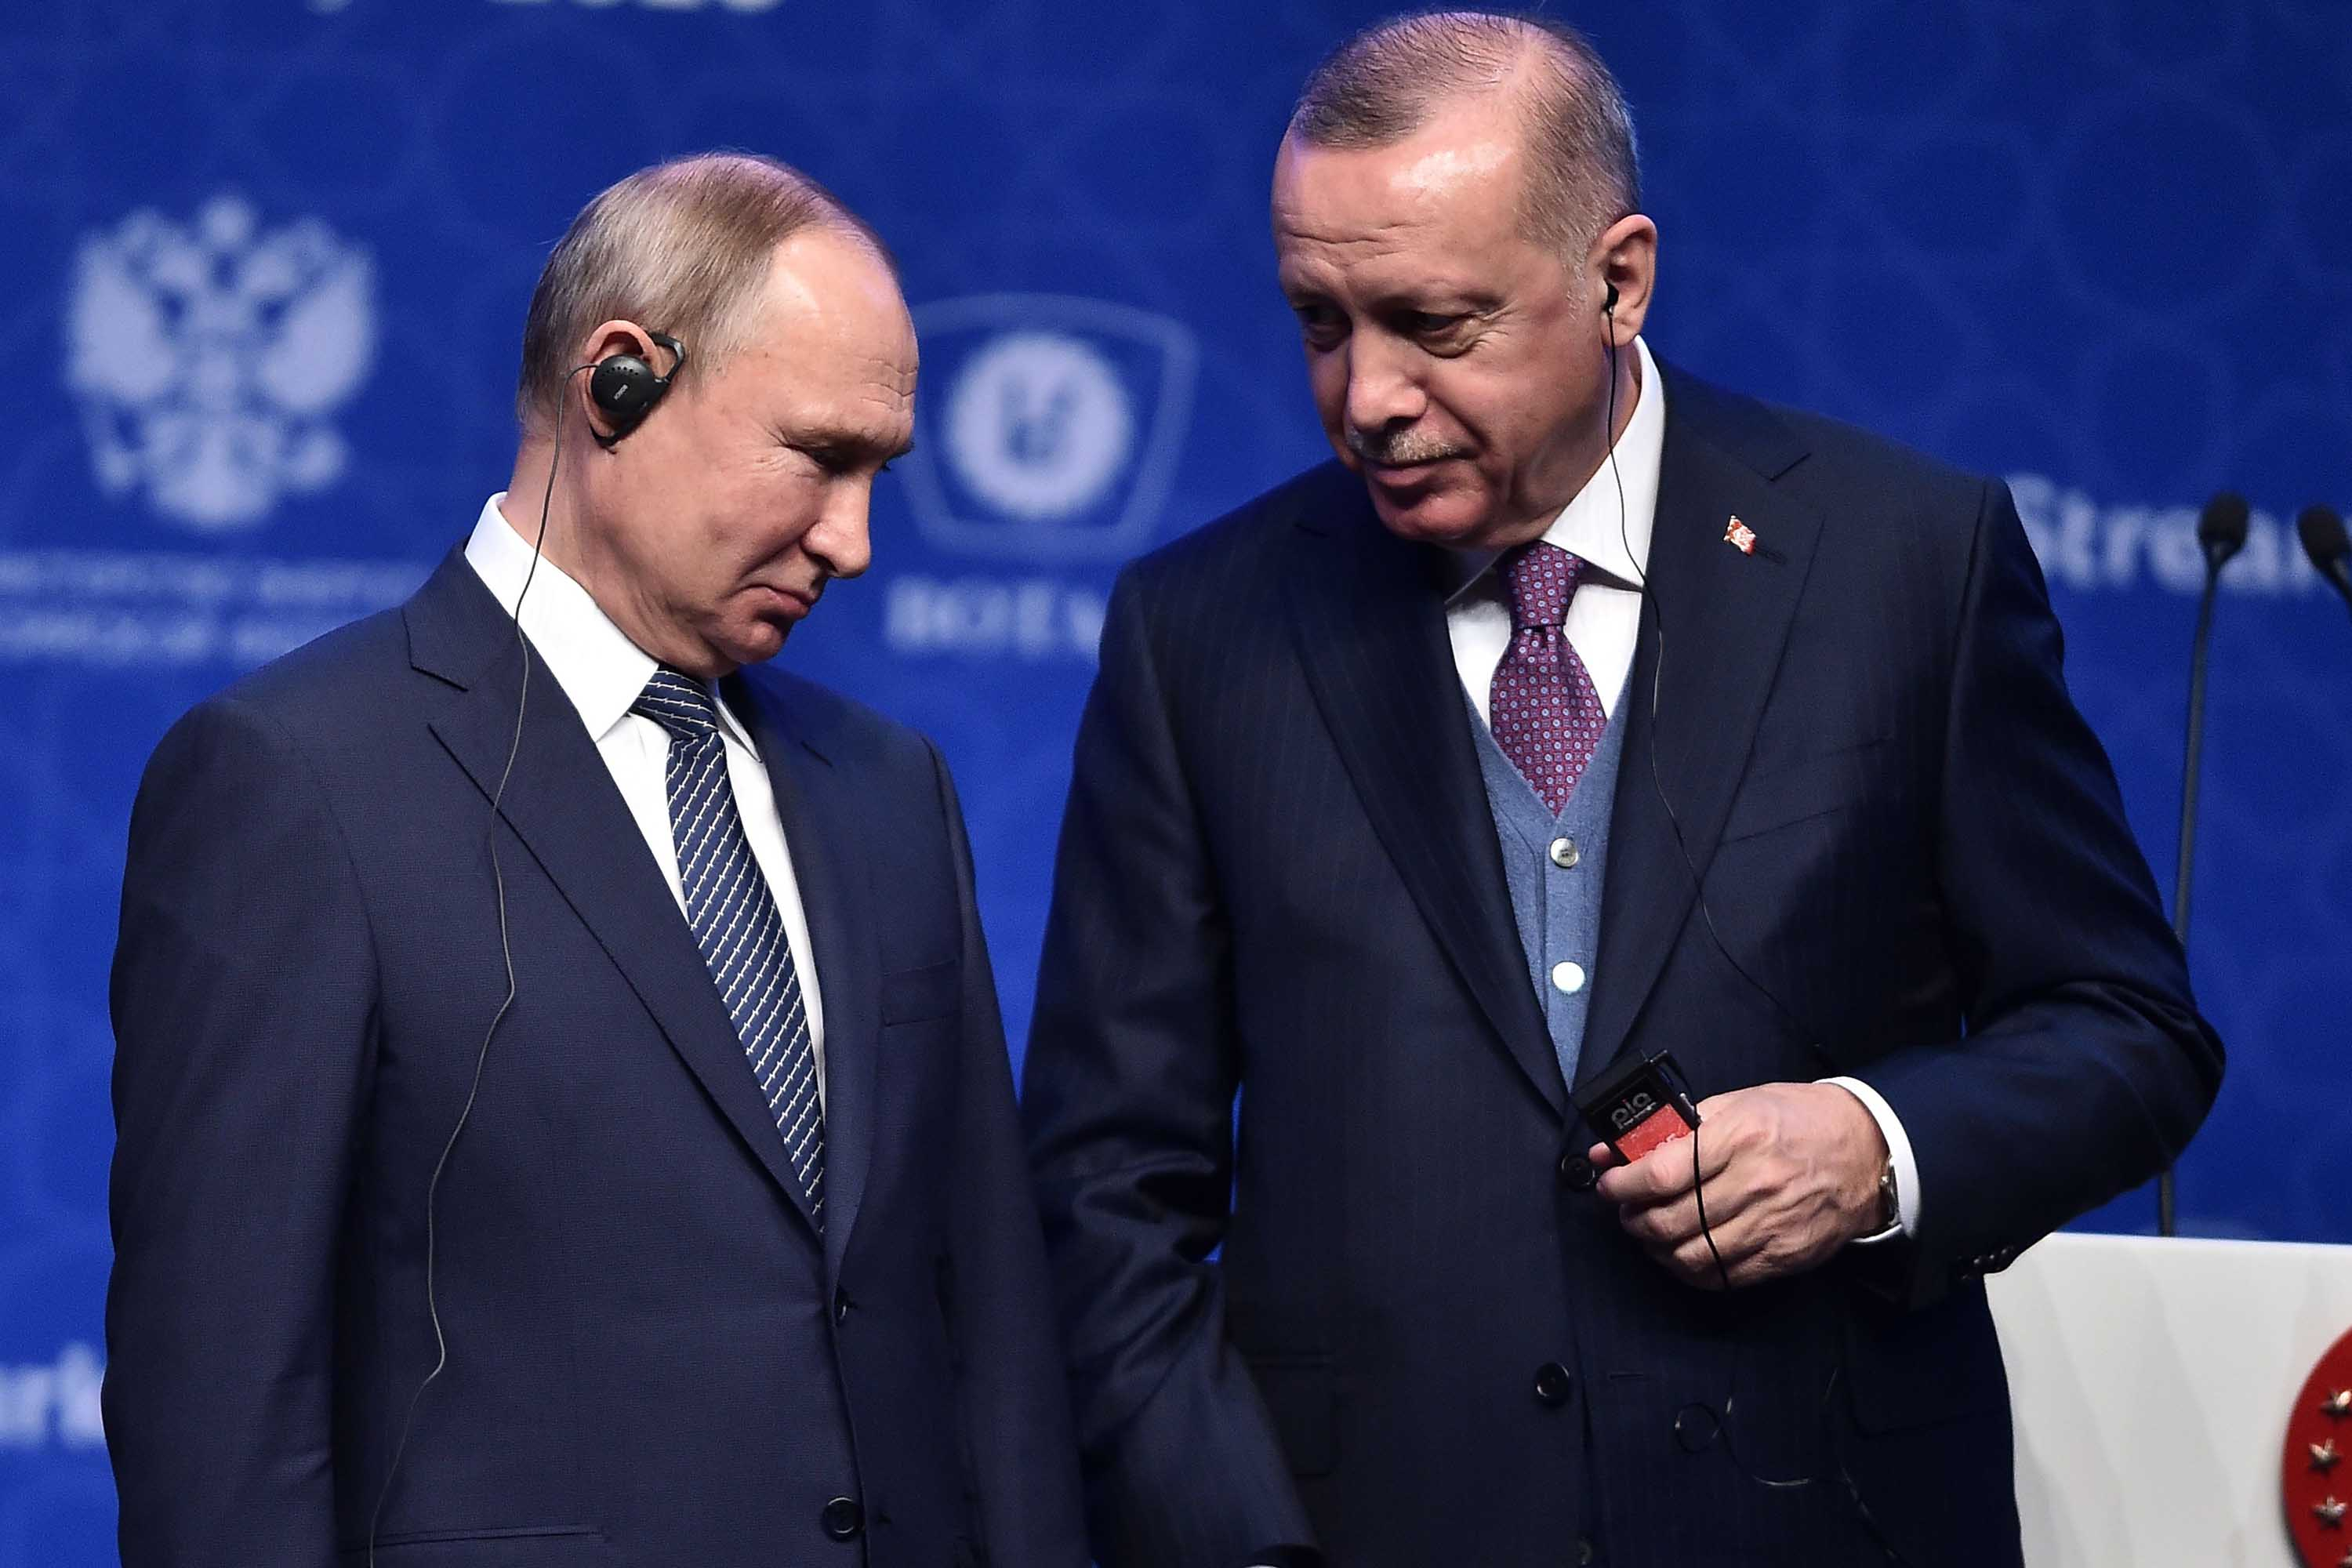 Russian President Vladimir Putin and Turkish President Recep Tayyip Erdogan attend the inauguration ceremony of a new gas pipeline in Istanbul, Turkey on Wednesday.